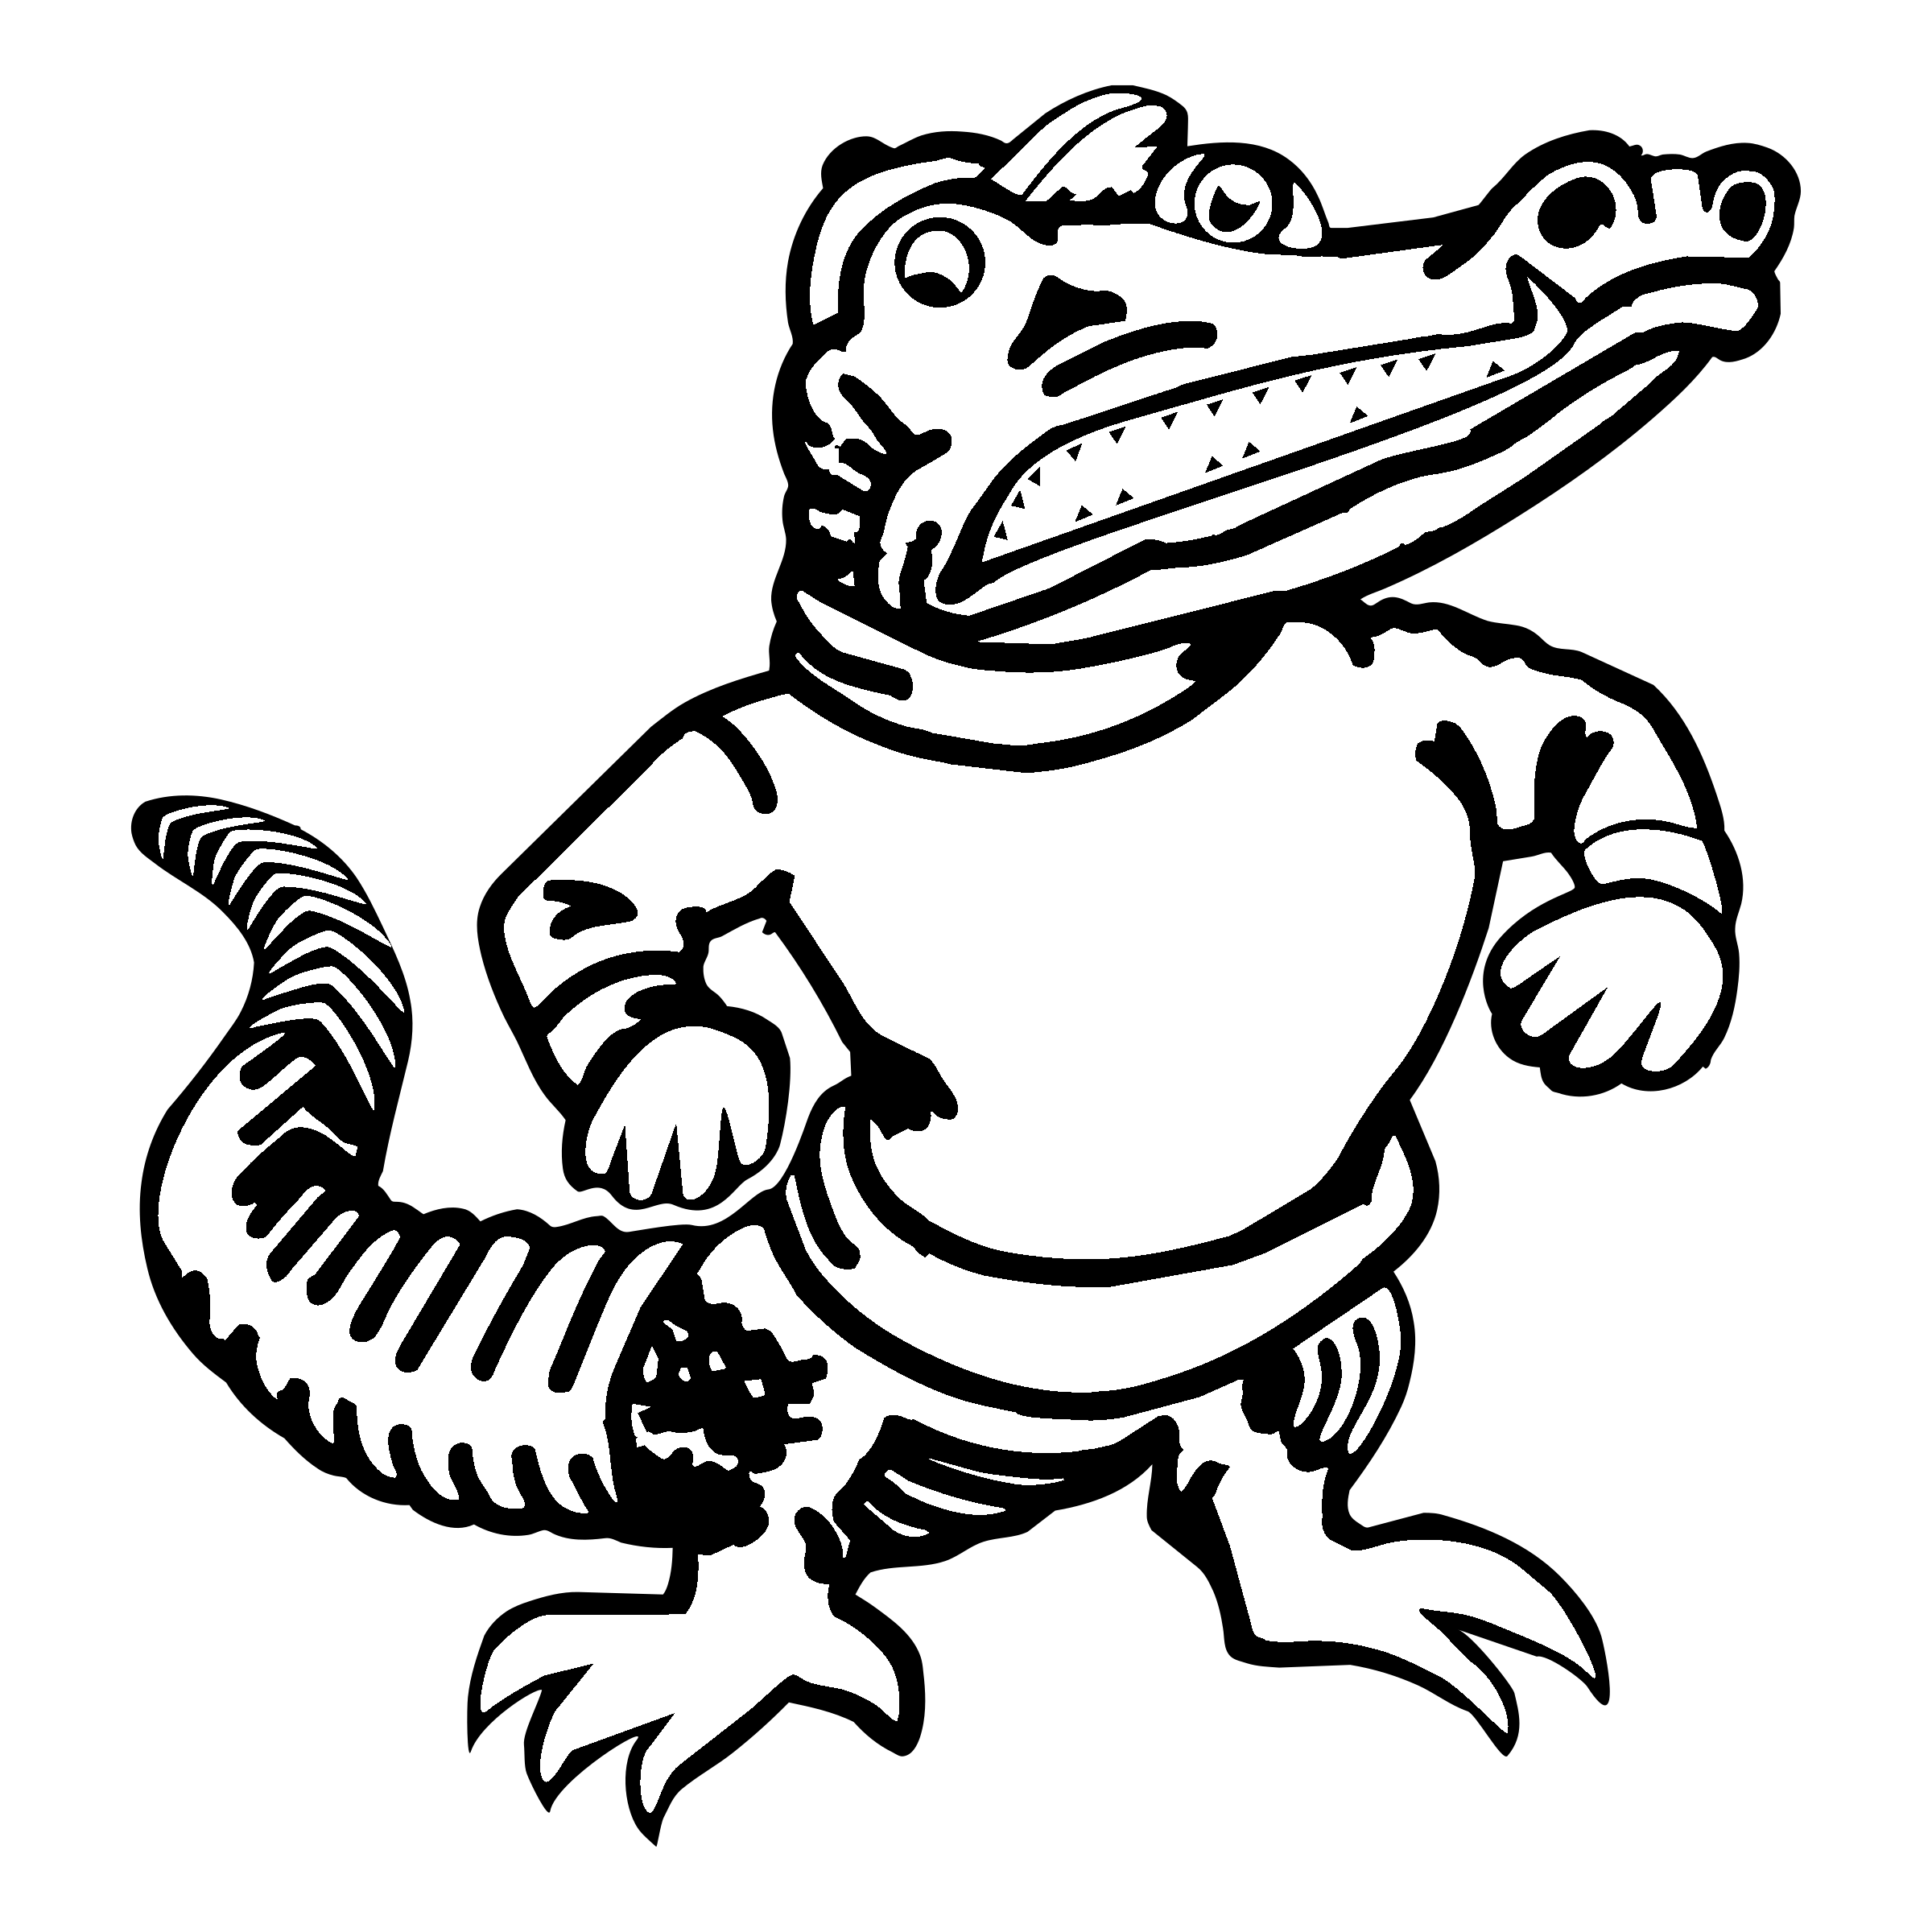 University of Florida Florida Gators football Clip art.